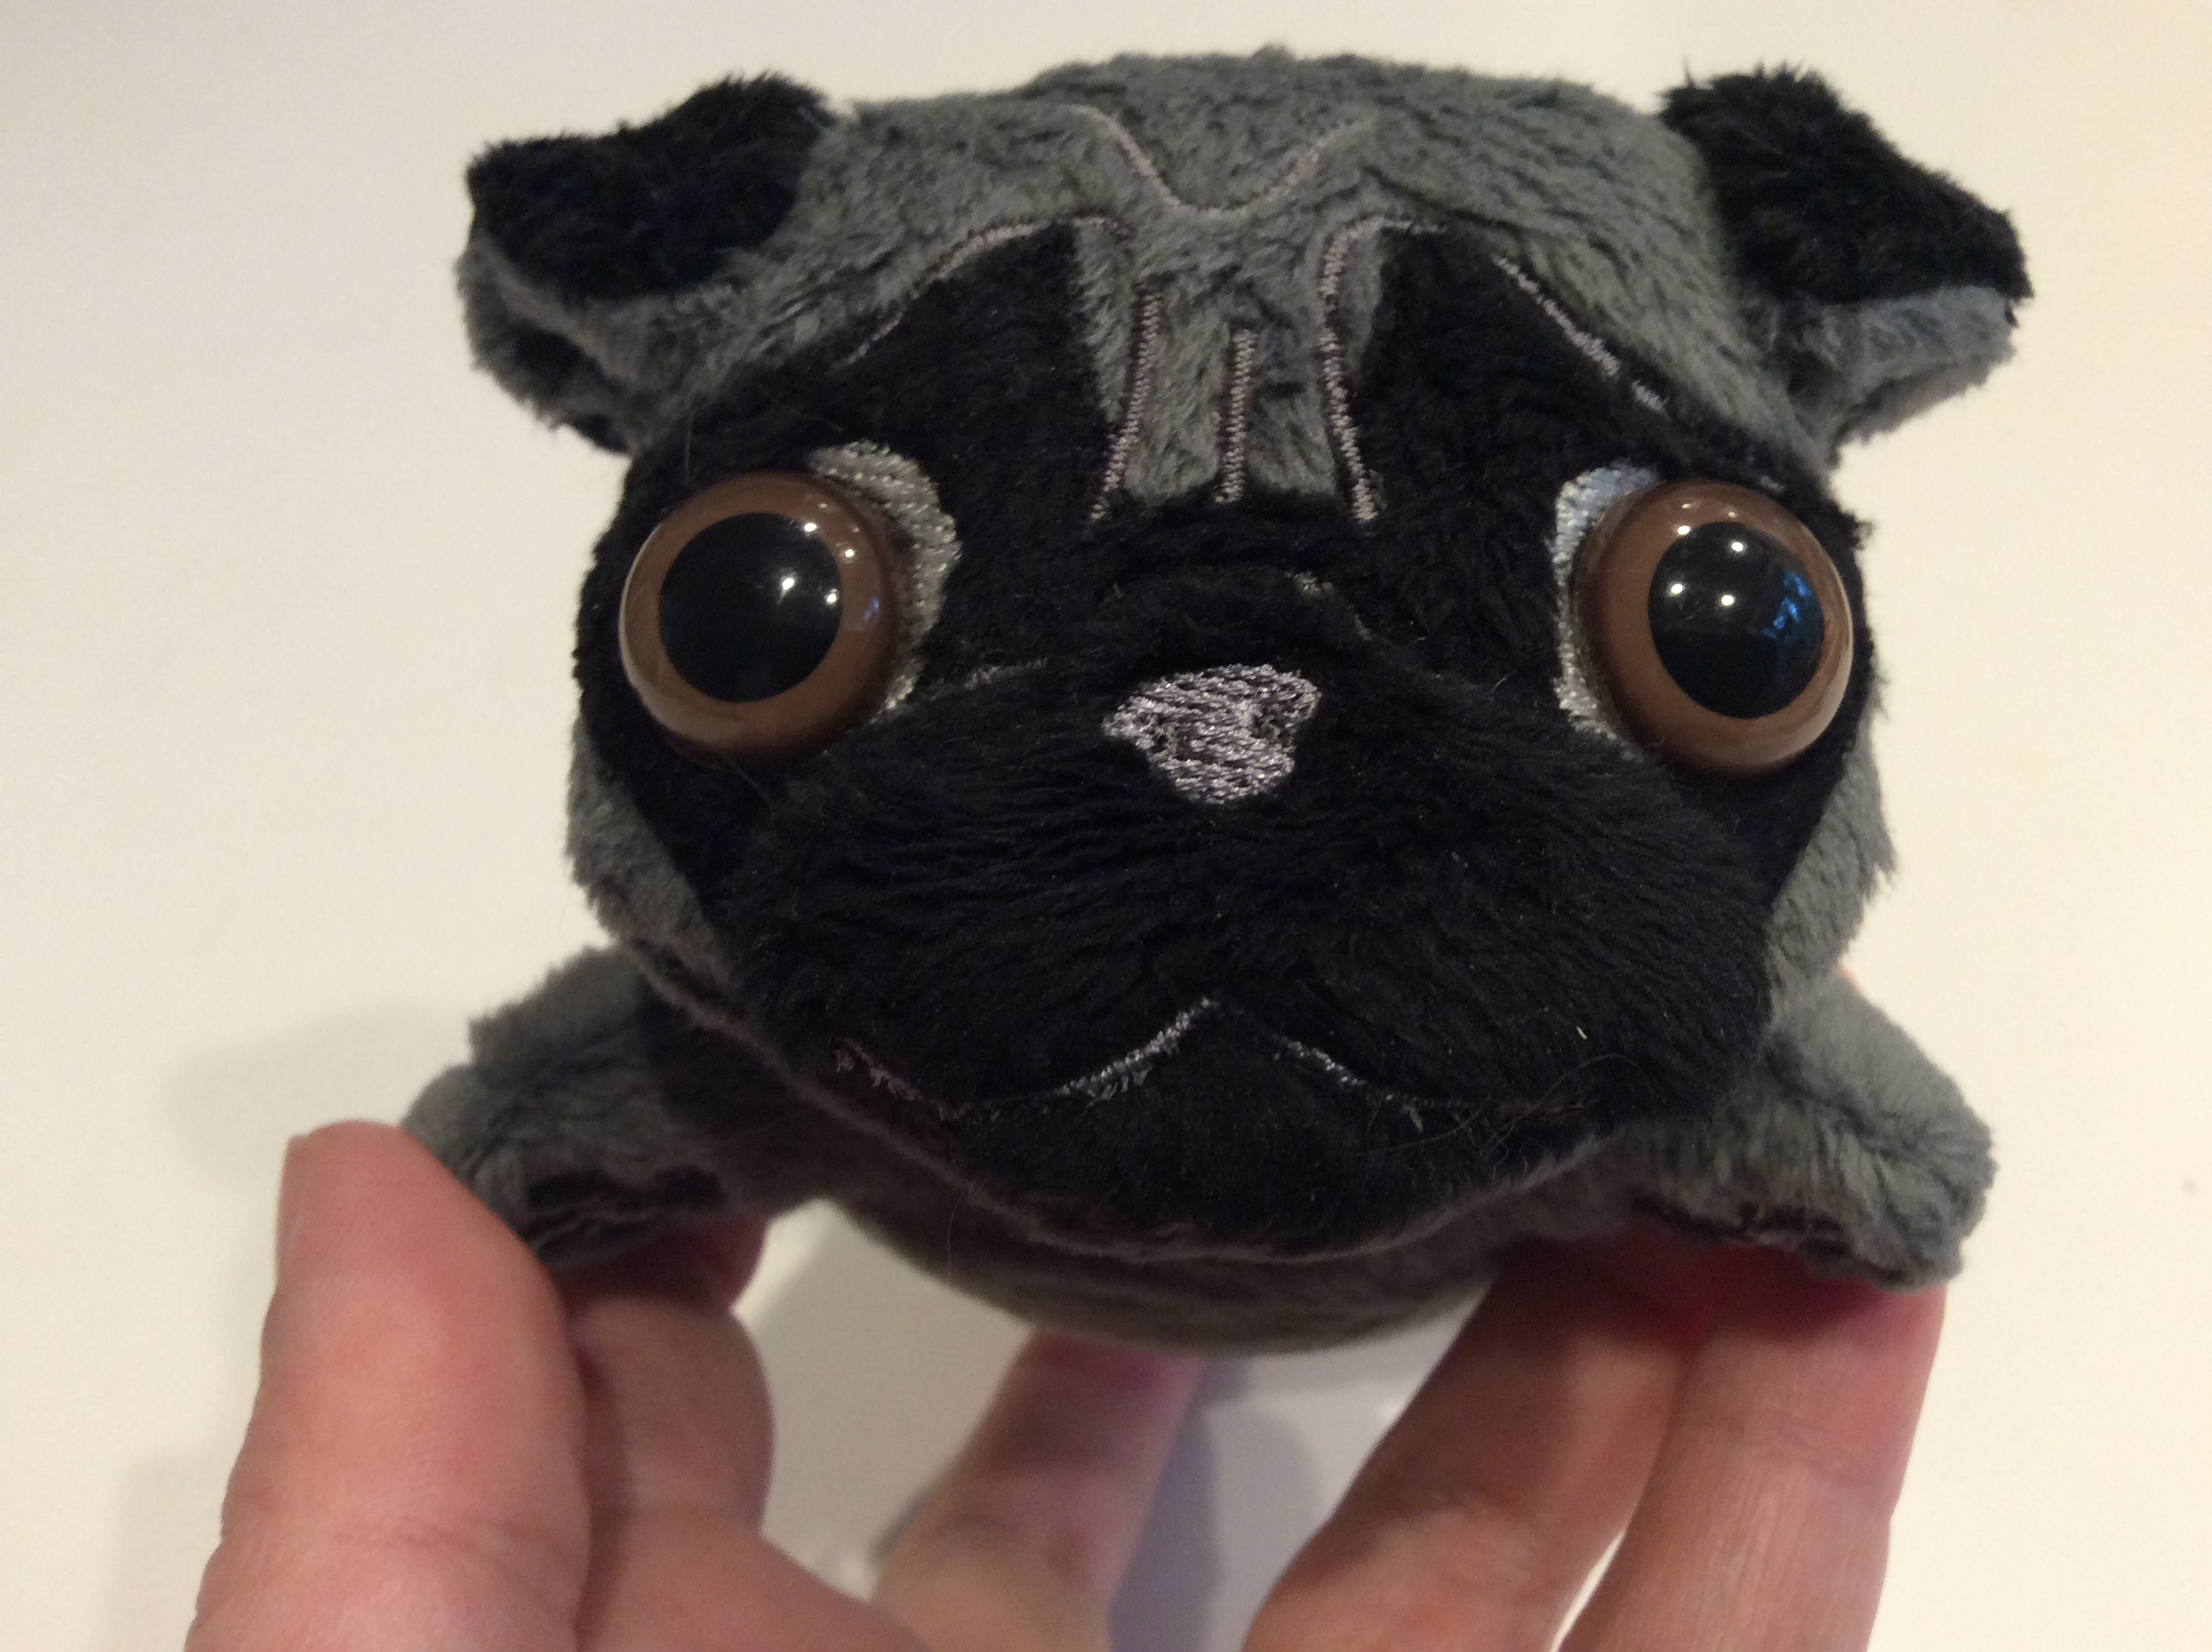 Closeup of a plush pug in silver with black mask.